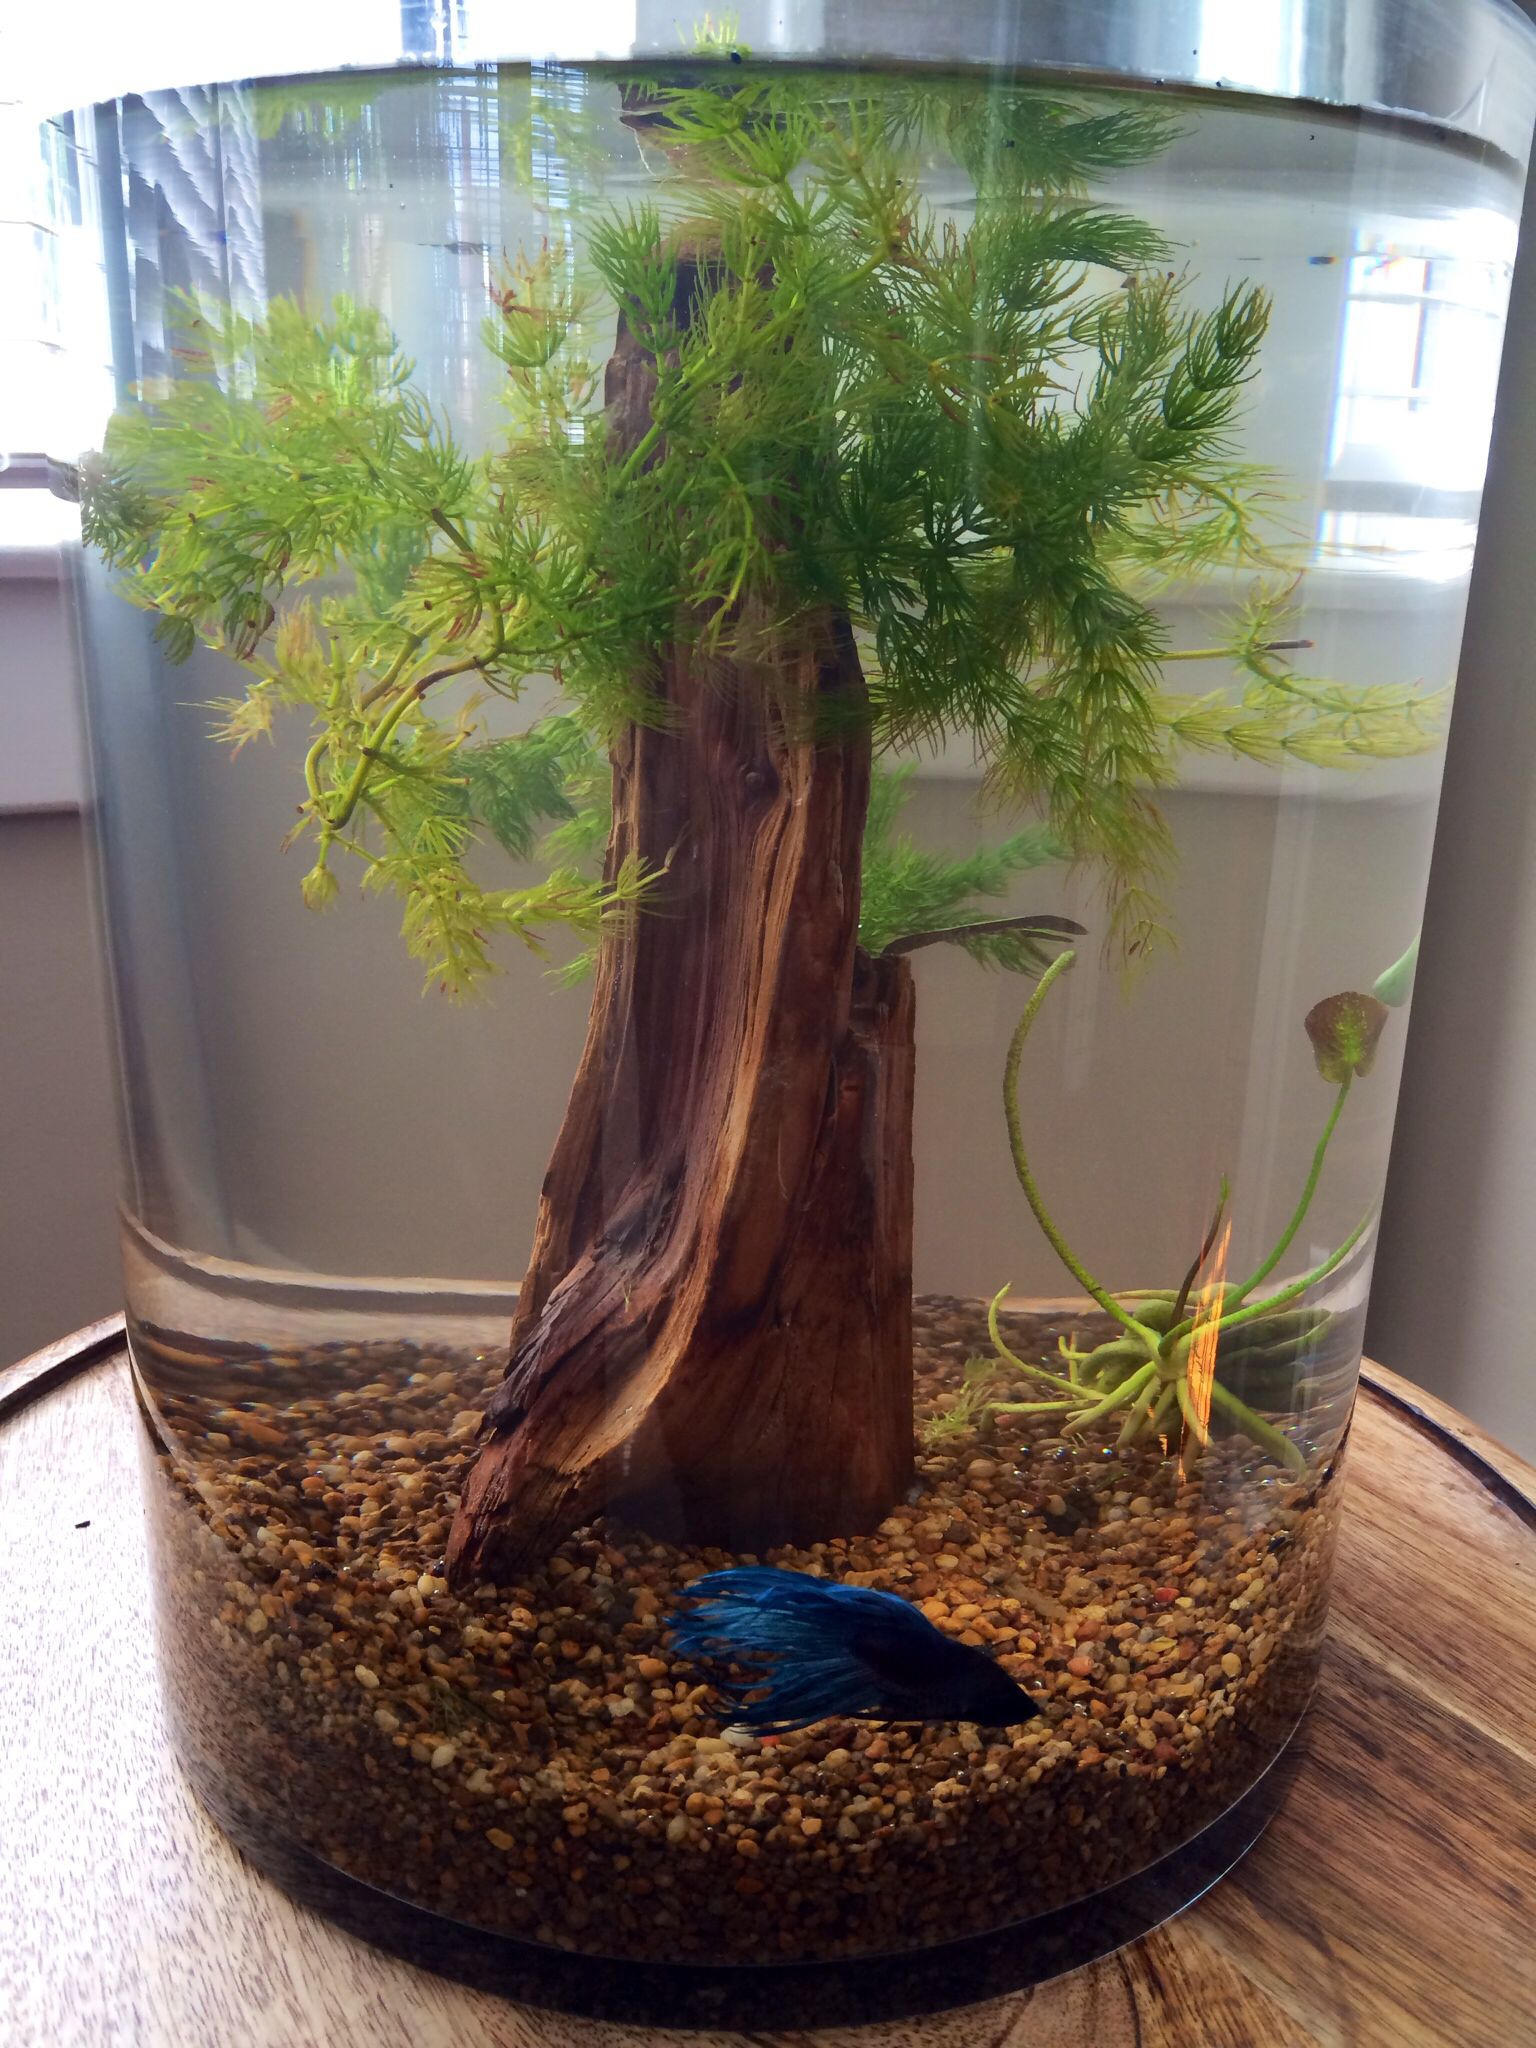 Small aquarium fish tanks - Betta Tank Used Drift Wood And Live Floating Plants With A Cylinder 3 Gallon Base Best Fish Tankssmall